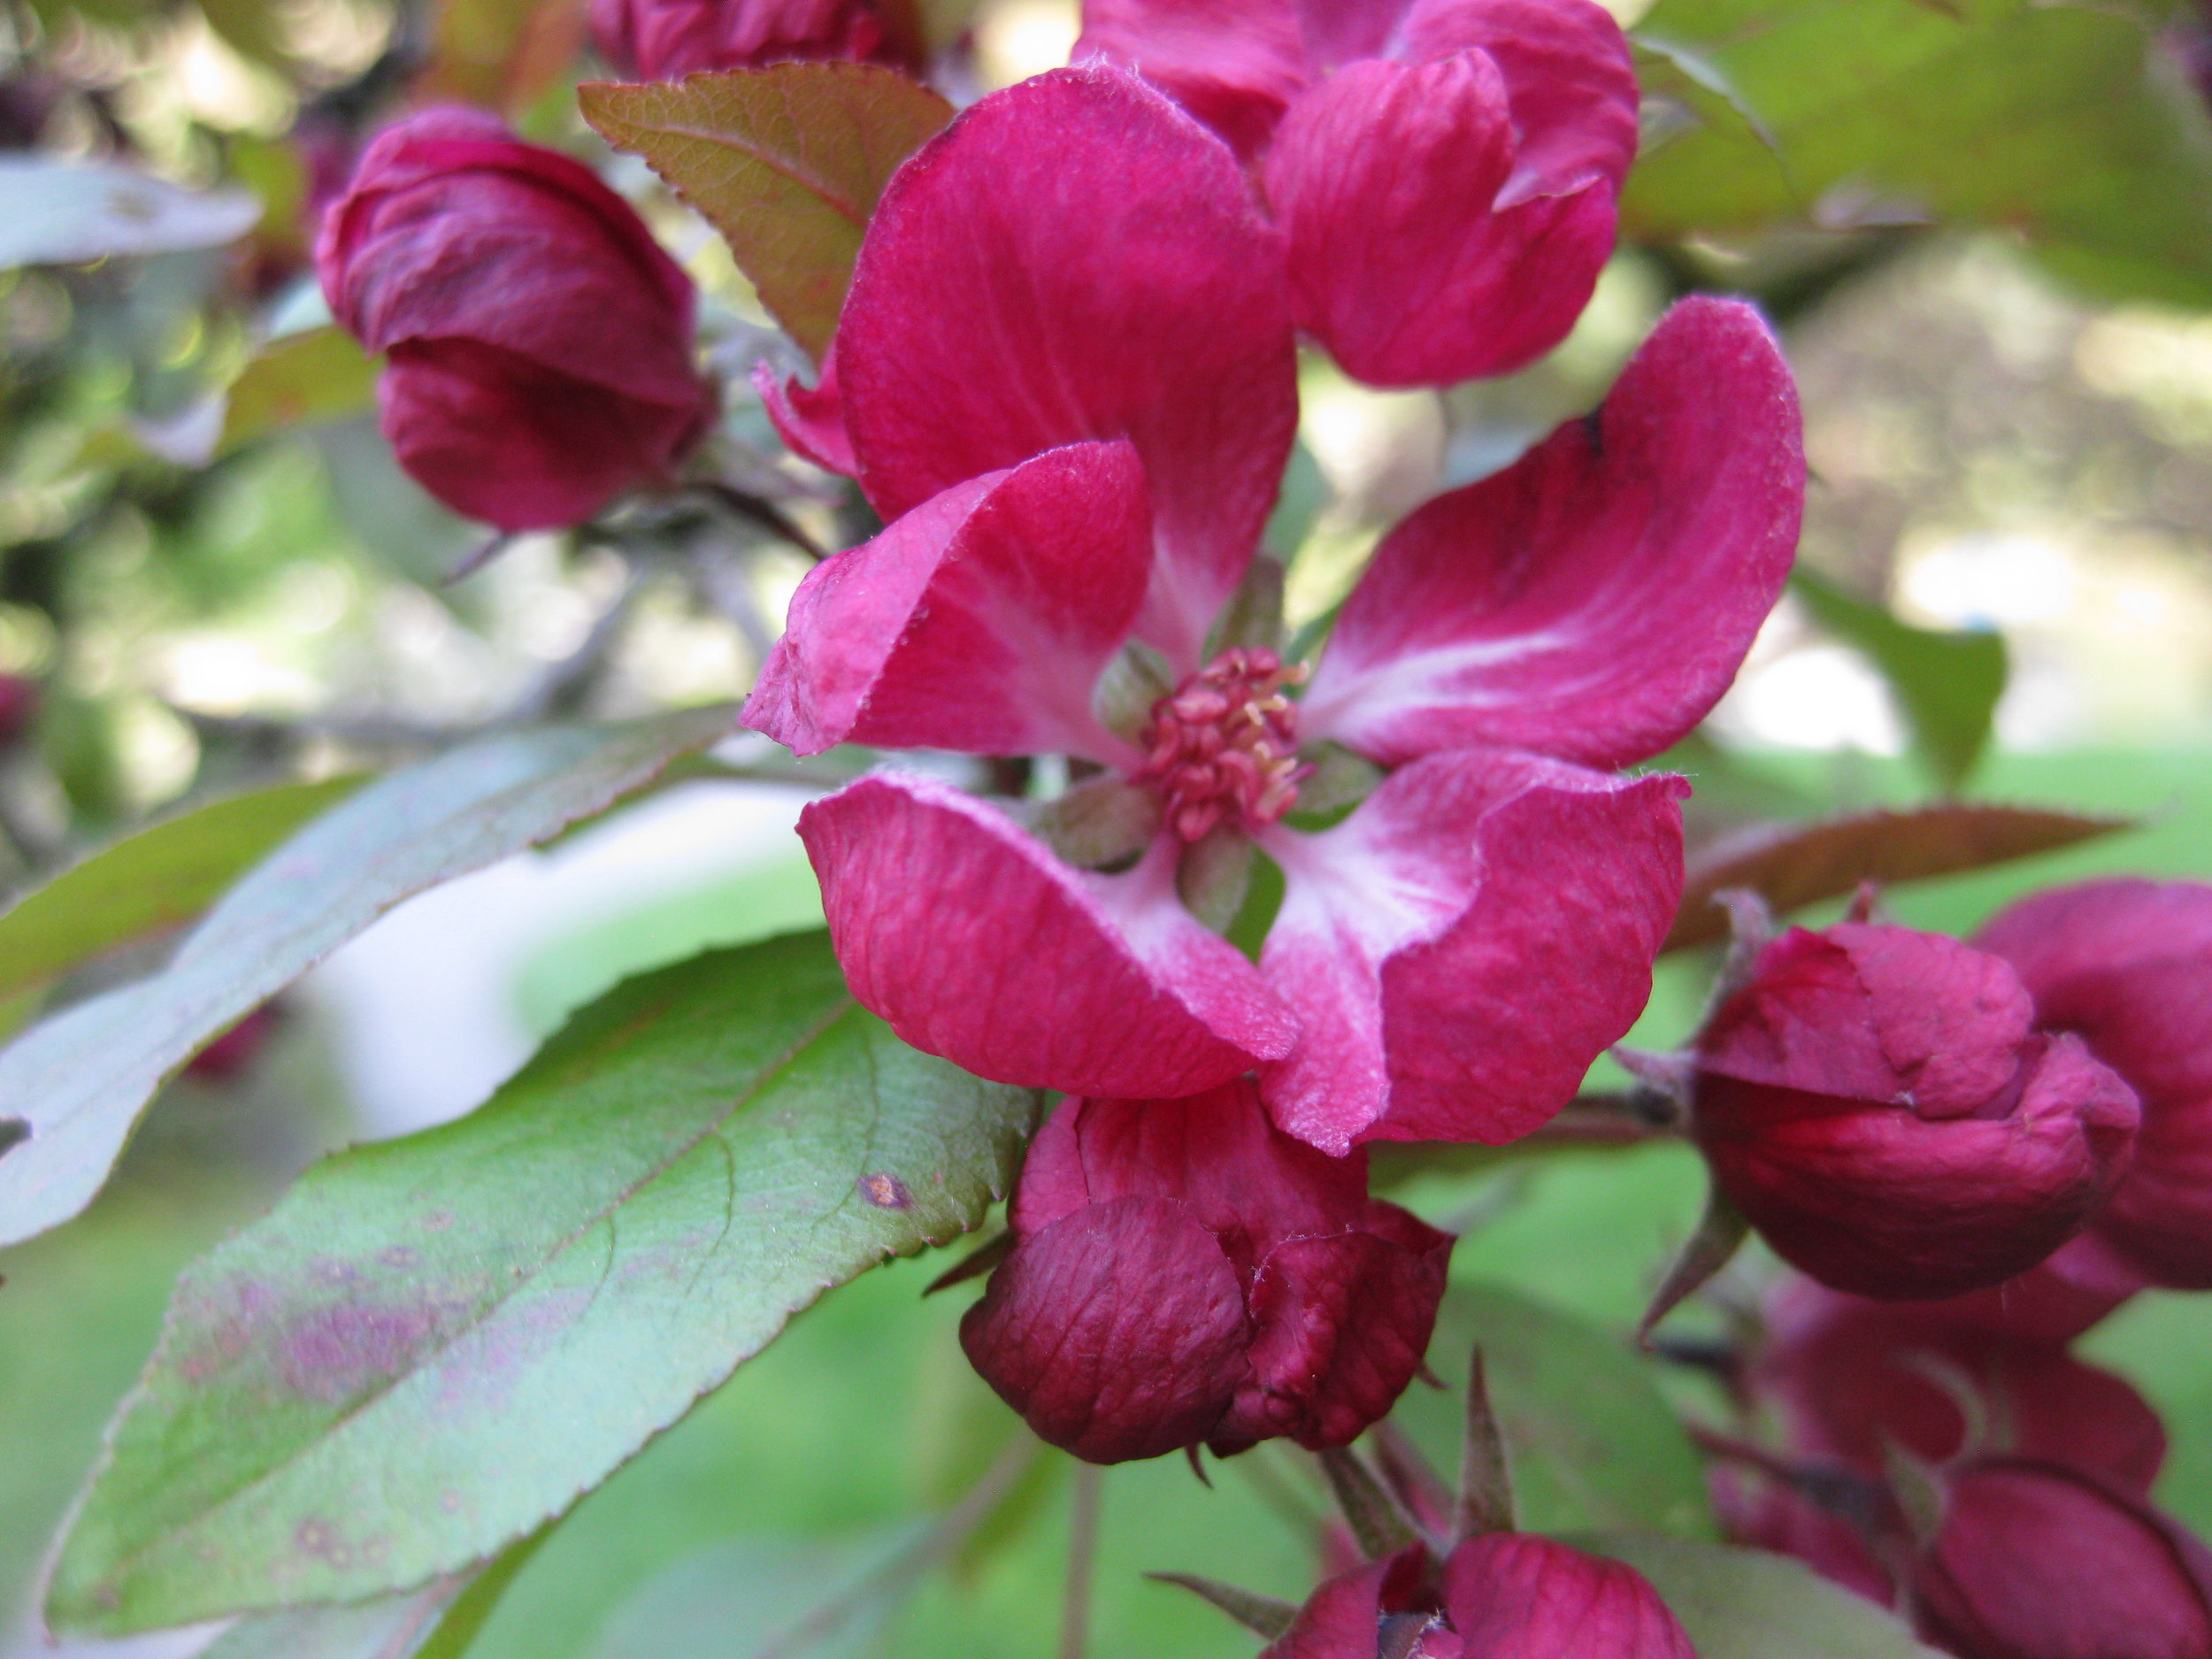 Flowers of the 'Lemoinei' crabapple in the orchard area of the Seattle Japanese Garden (photo: Aleks Monk)